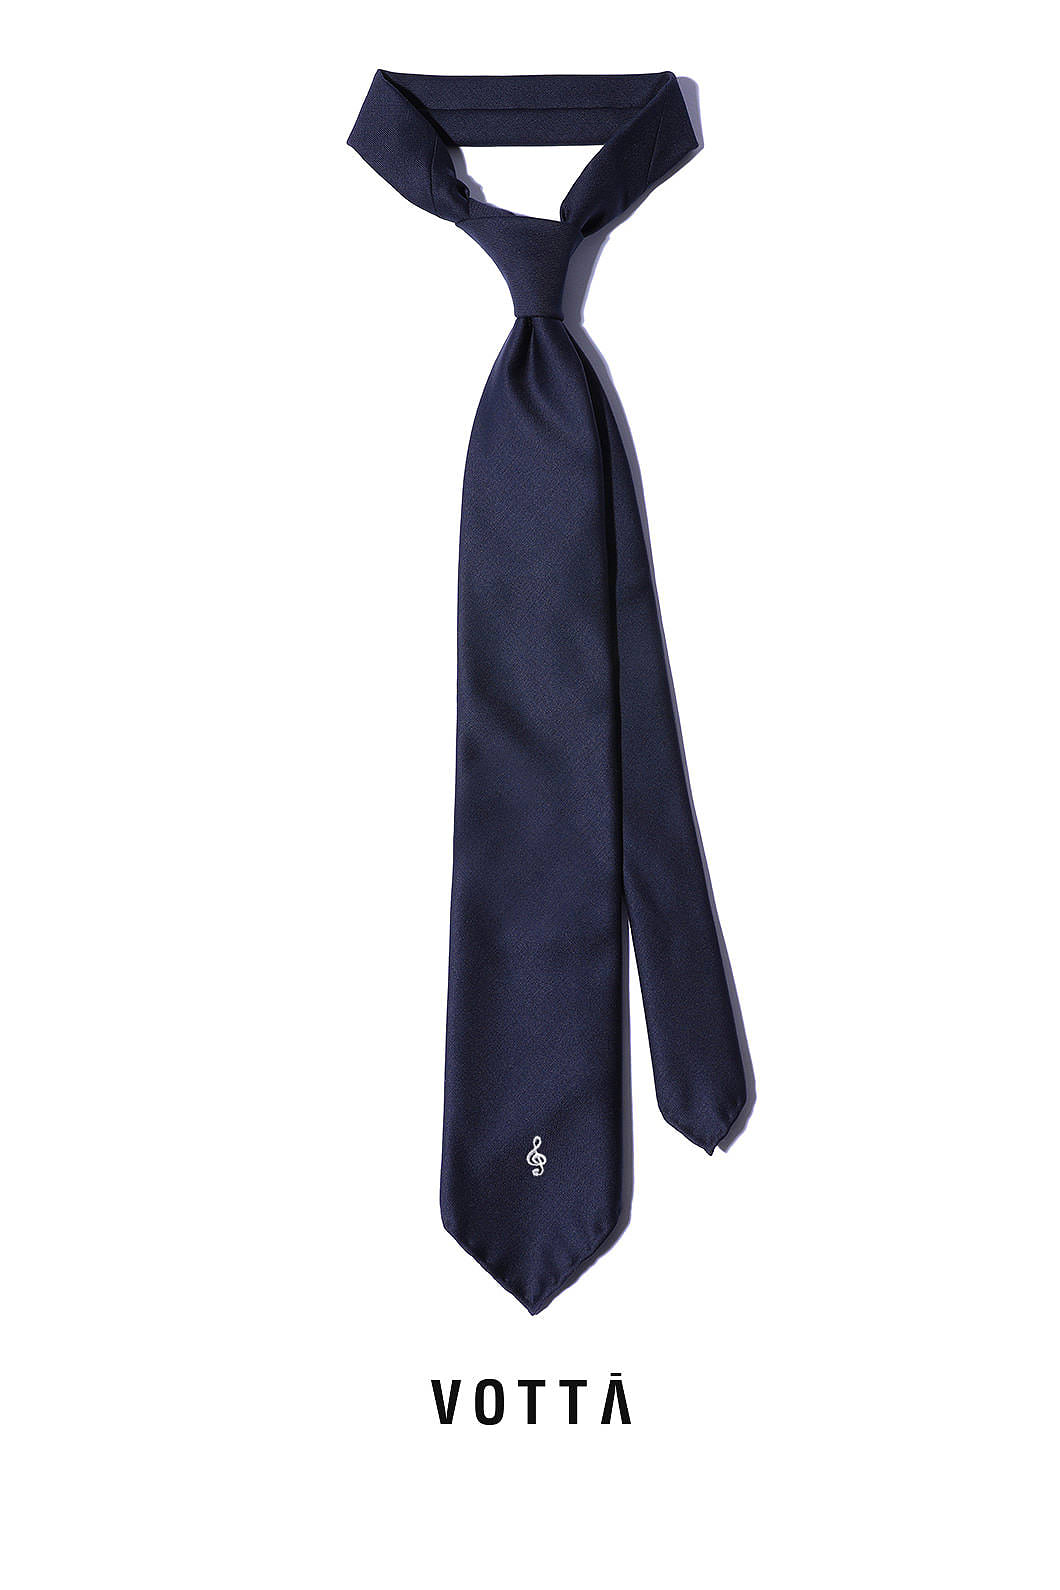 HAND MADE CLEF WOOL TIE-NAVYITALY Fabric-Wool 100%